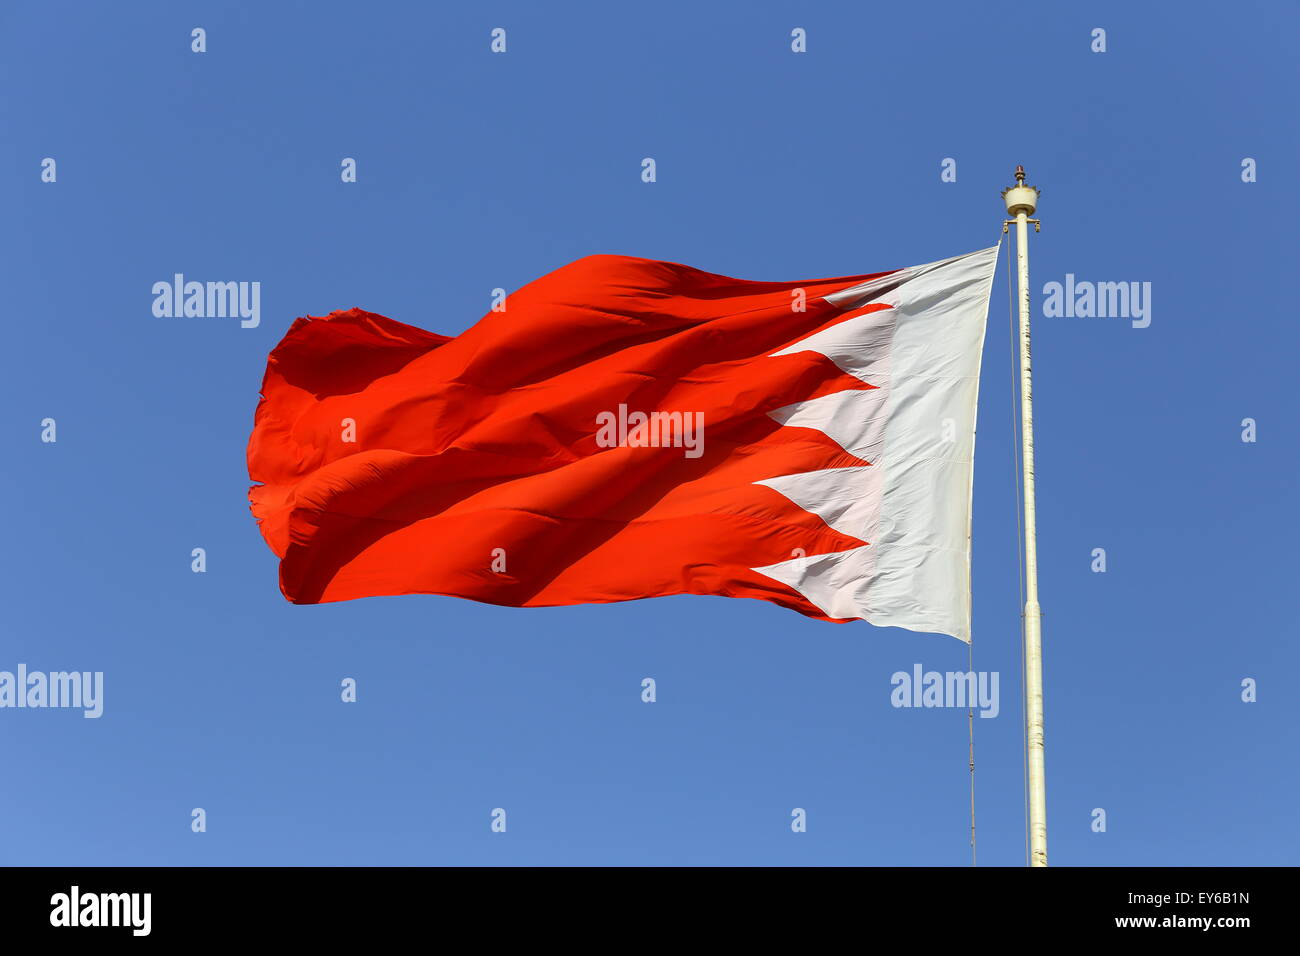 Bahrain flag blowing in the wind on a sunny day - Stock Image